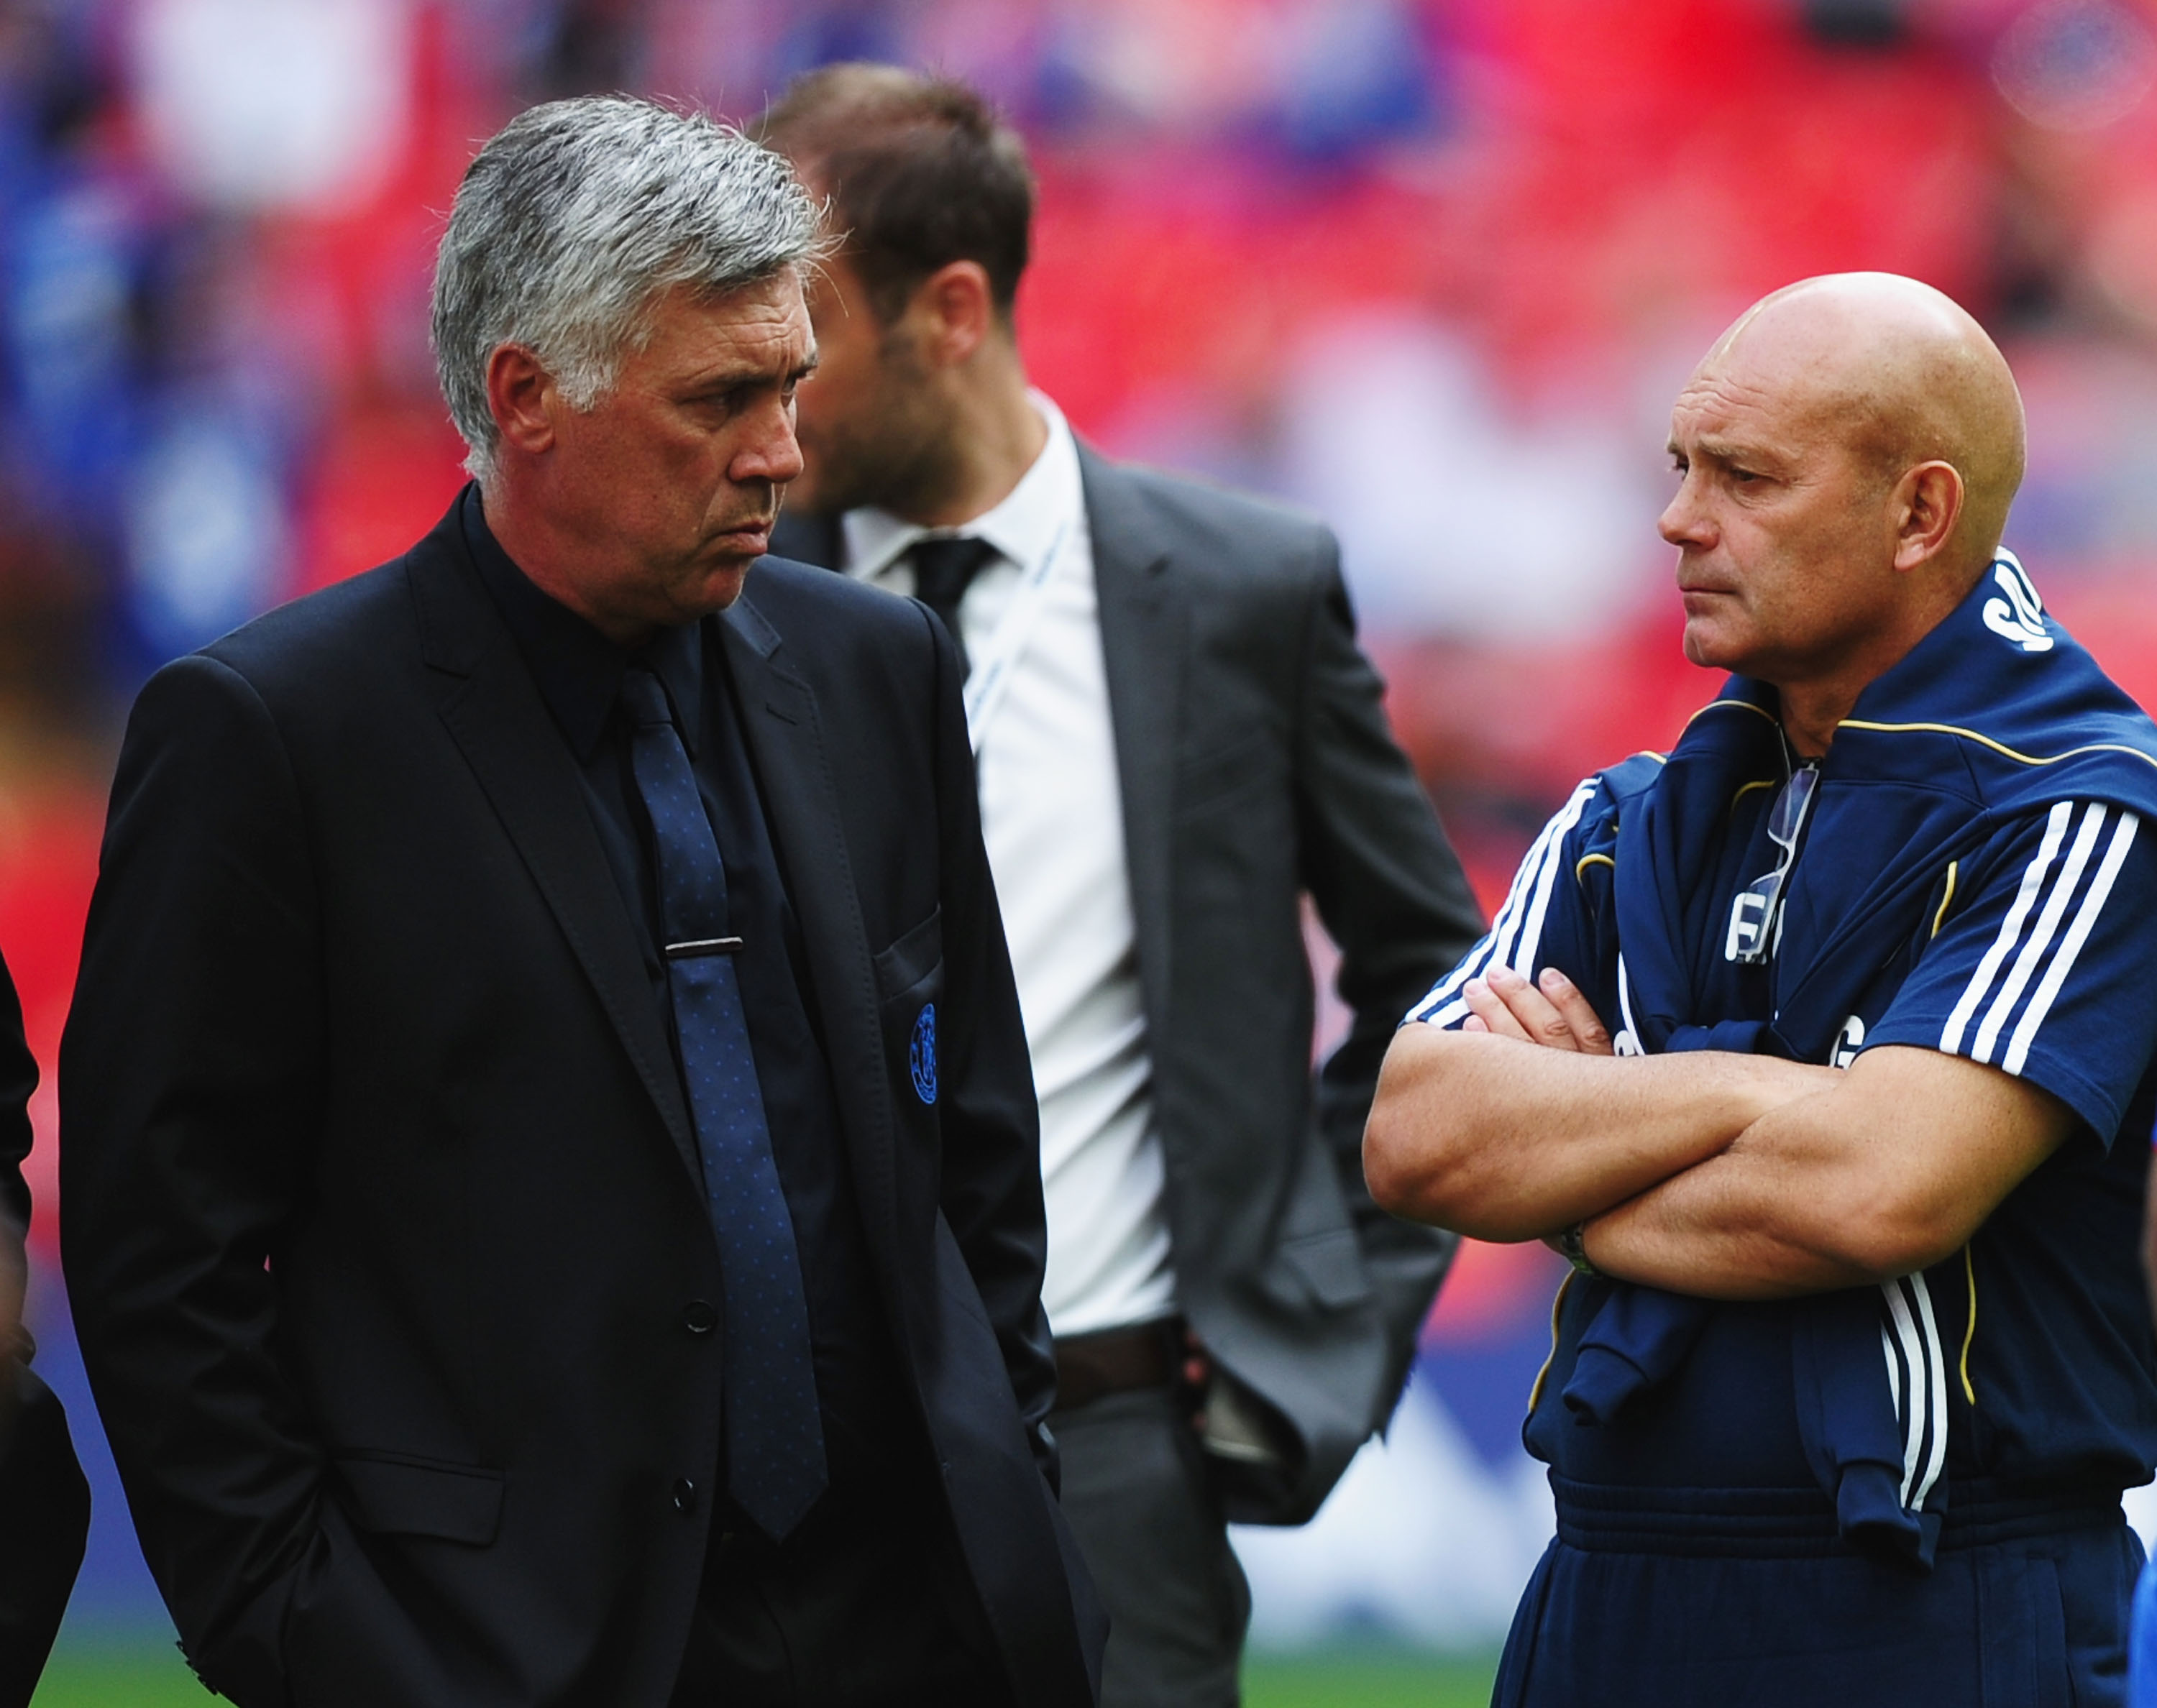 LONDON, ENGLAND - AUGUST 08:  Chelsea manager Carlo Ancelotti with assistant manager Ray Wilkins (R) after the FA Community Shield match between Chelsea and Manchester United at Wembley Stadium on August 8, 2010 in London, England.  (Photo by Laurence Gri